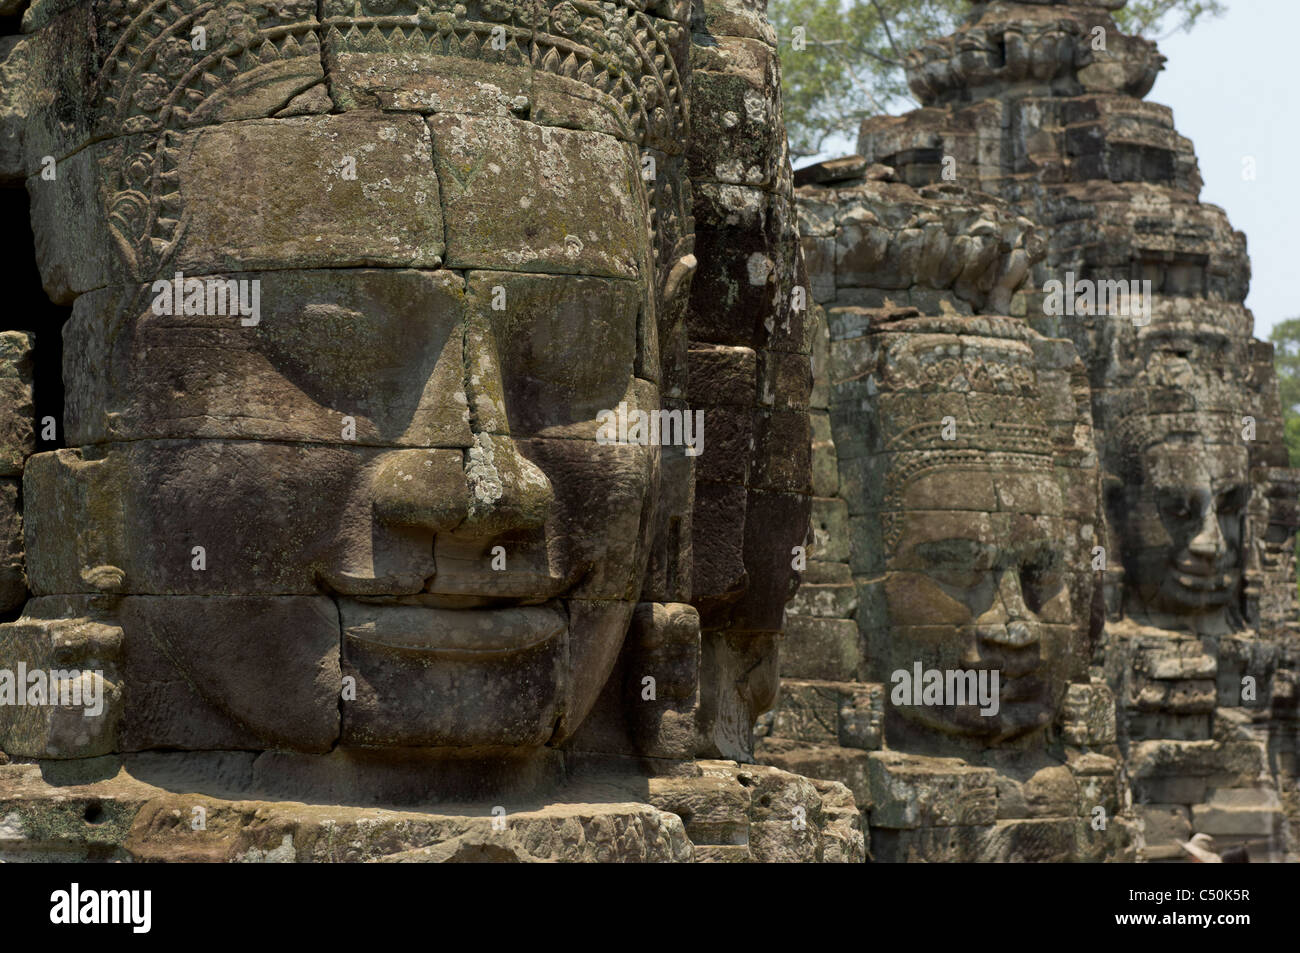 Enigmatic stone carved faces of The Bayon, Angkor Thom complex, Angkor, Siem Reap, Cambodia Stock Photo